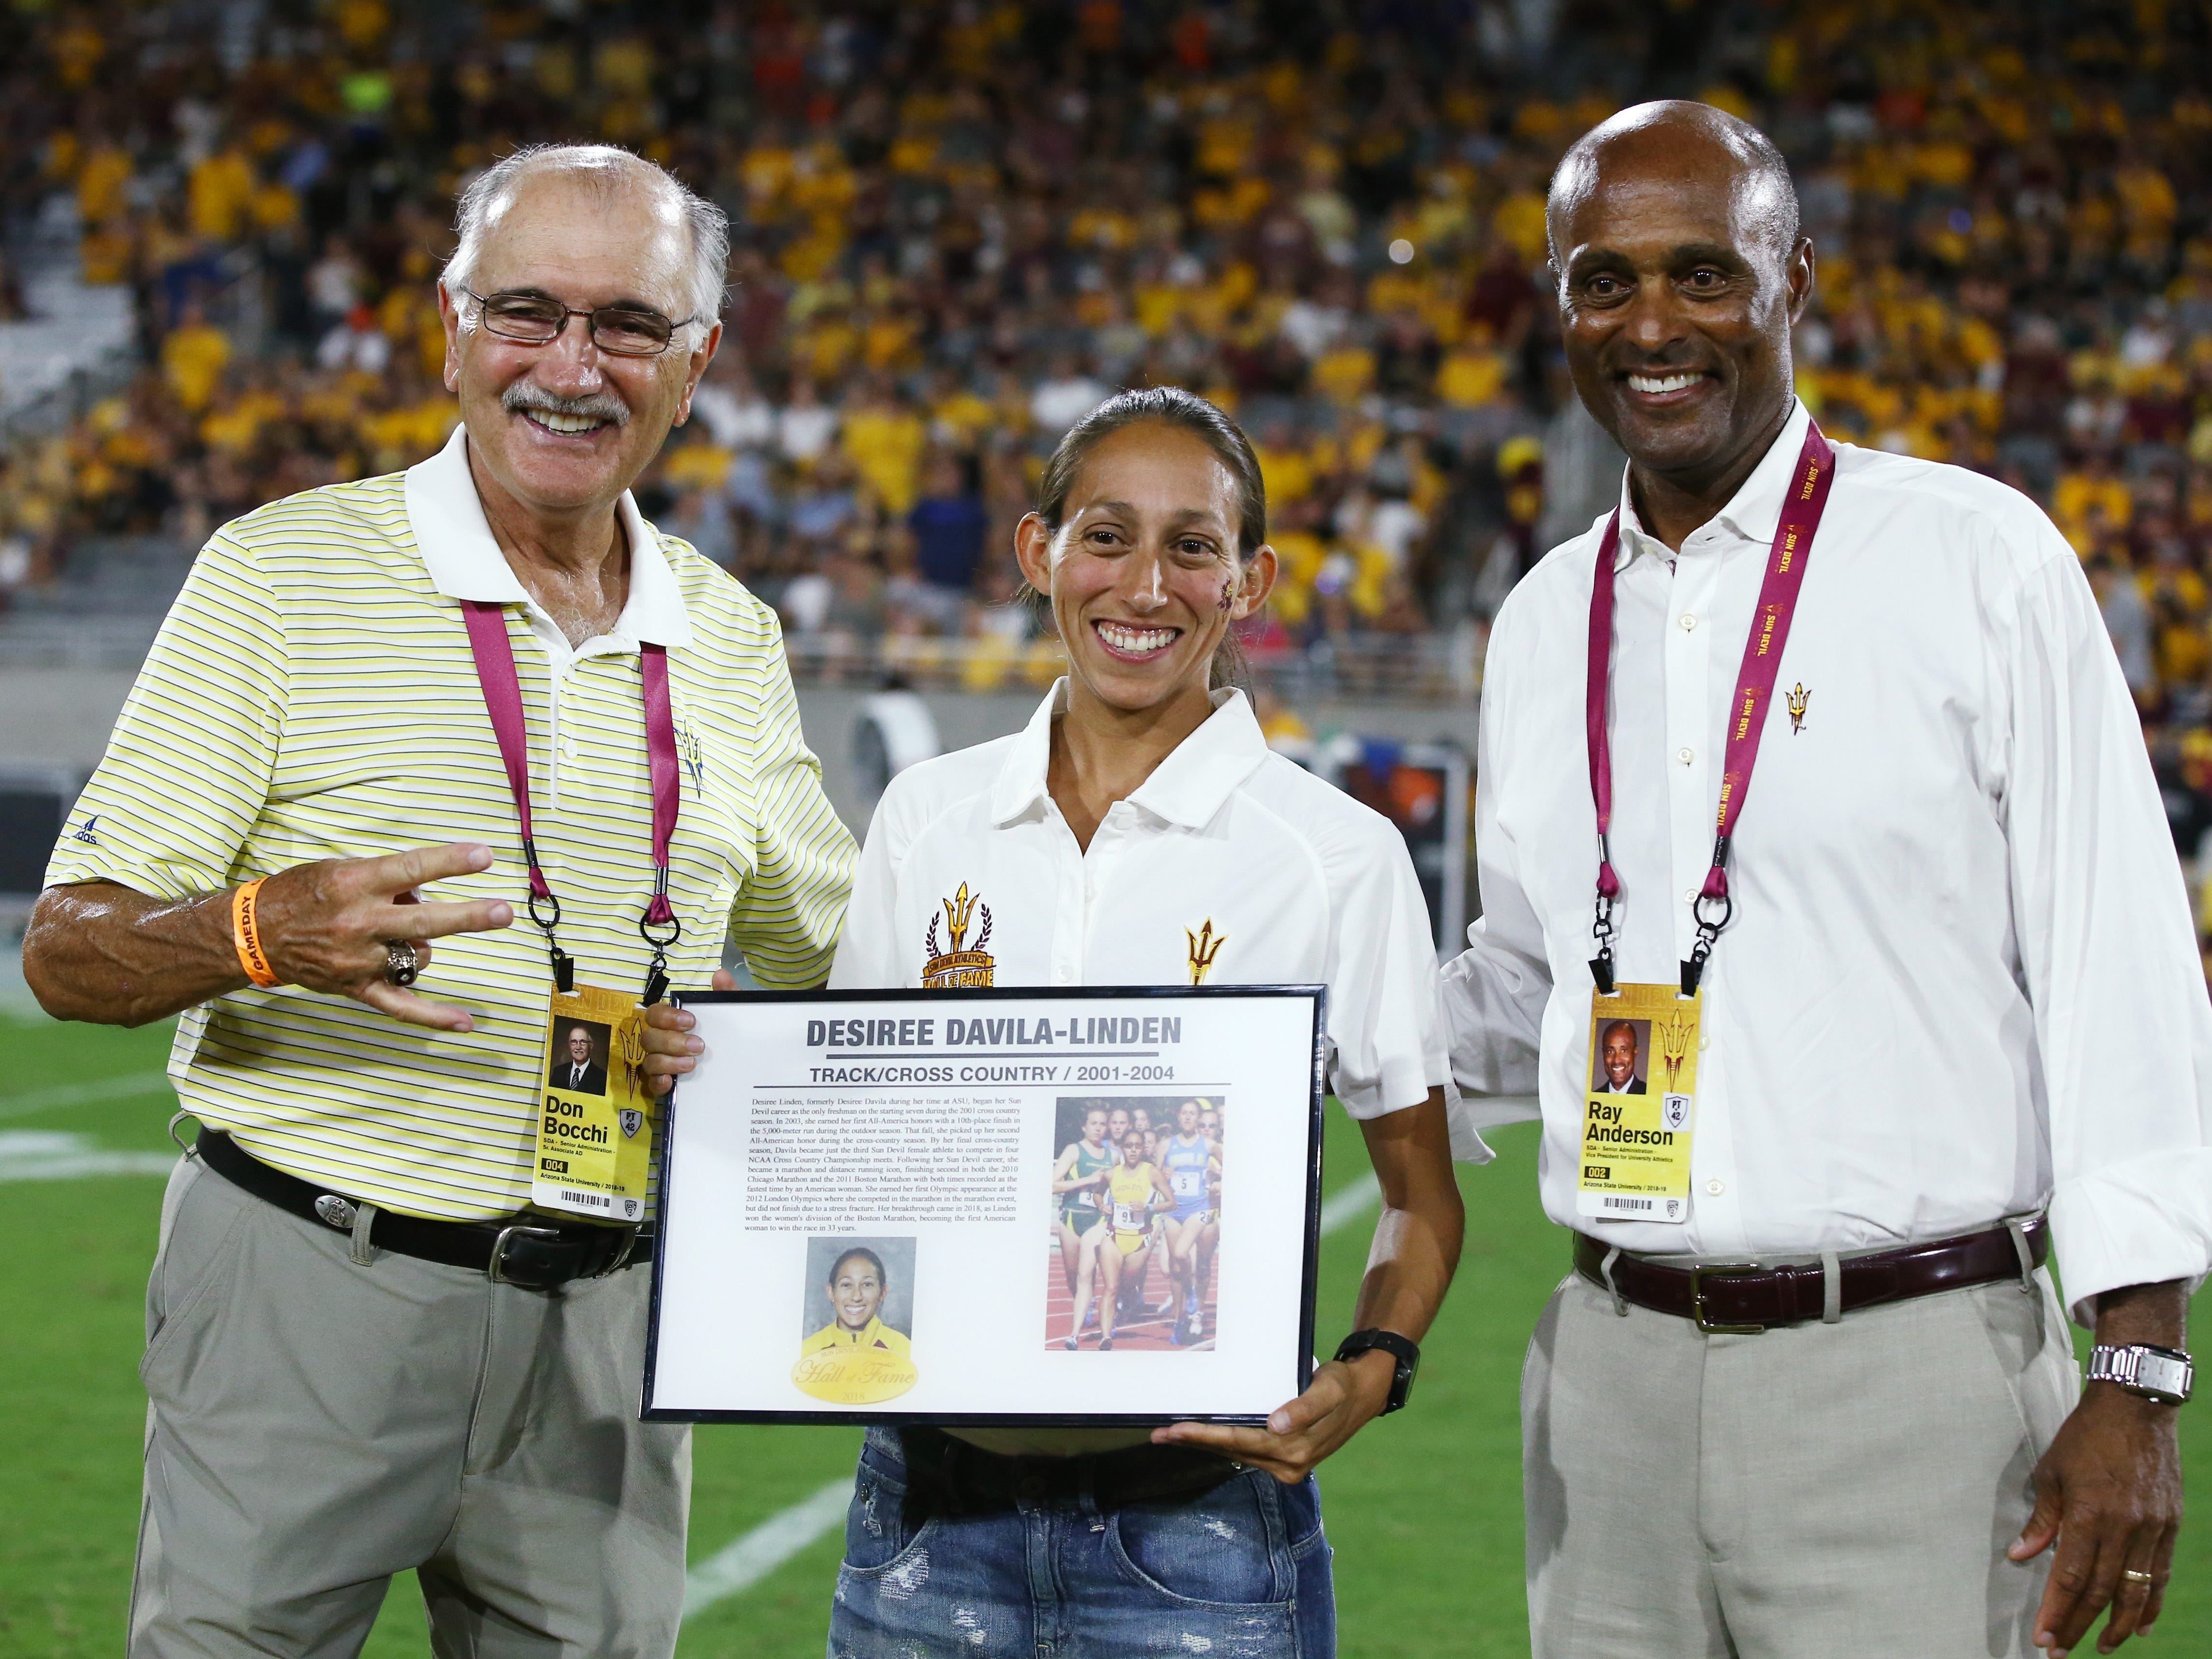 Arizona State track and cross country star Desiree Davila-Linden is welcomed into the ASU Athletics Hall of Frame on Sep. 29, 2018, at Sun Devil Stadium.